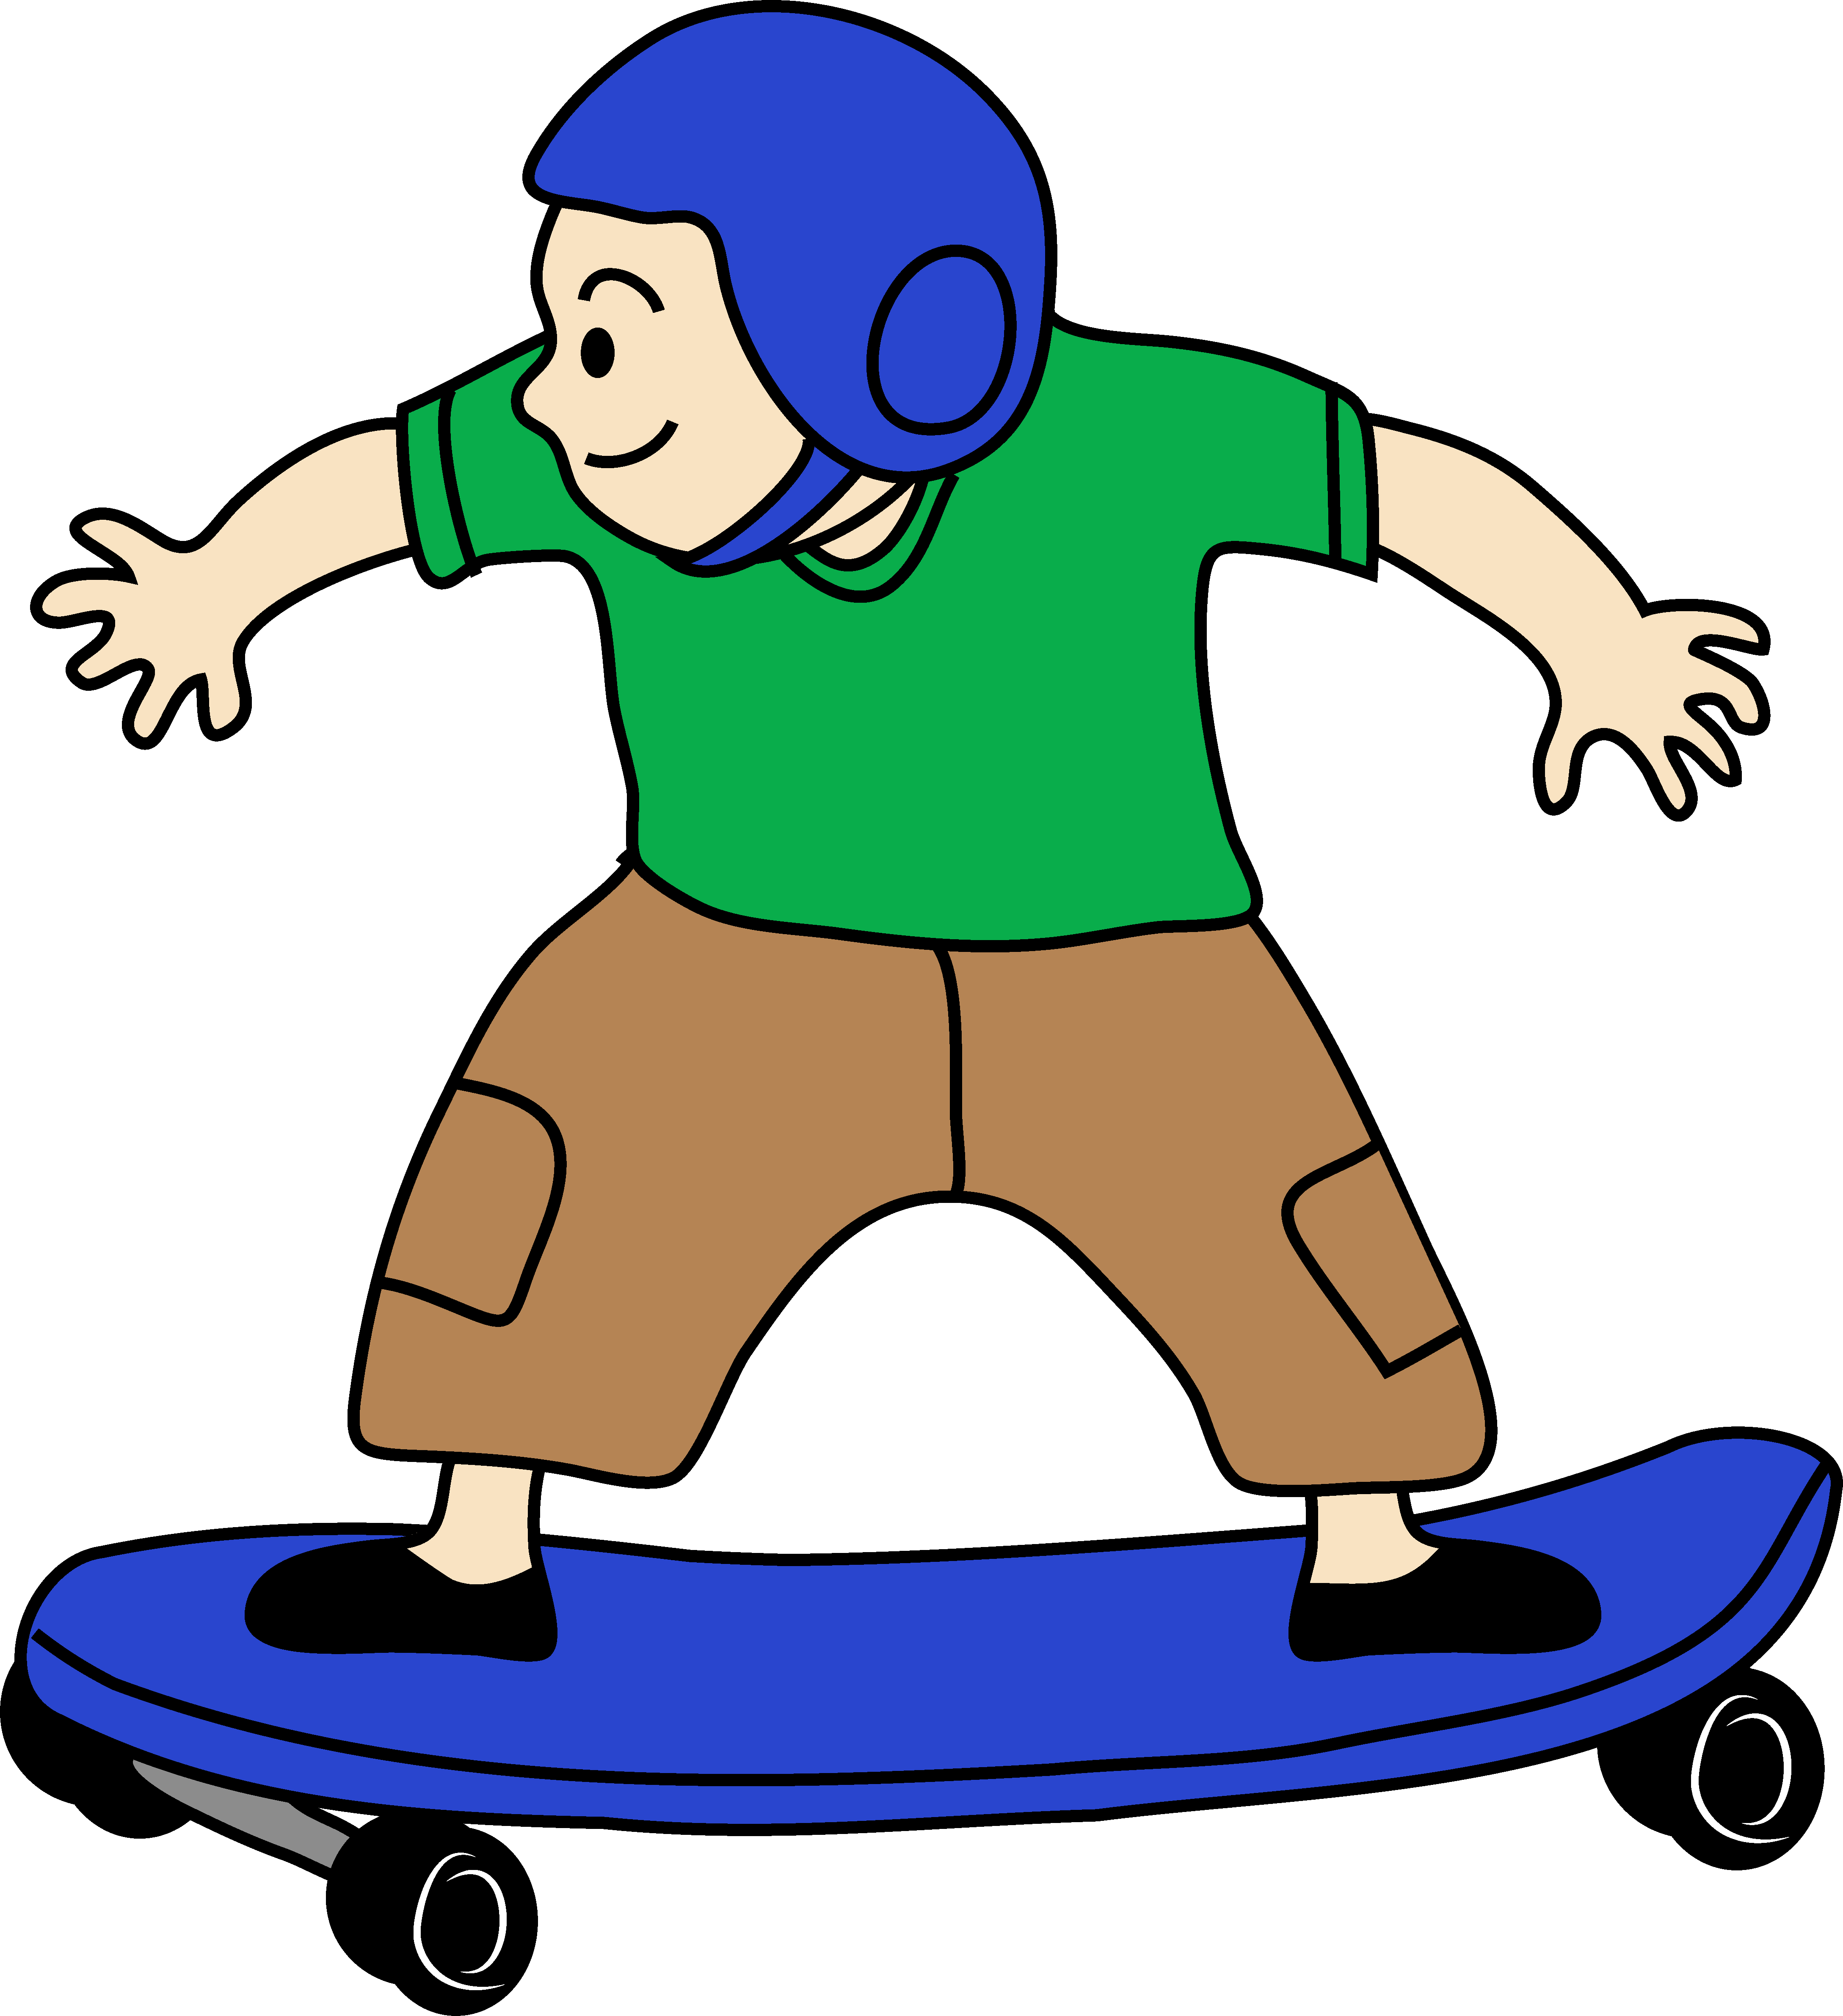 Free Skateboard Cliparts, Download Free Clip Art, Free Clip.